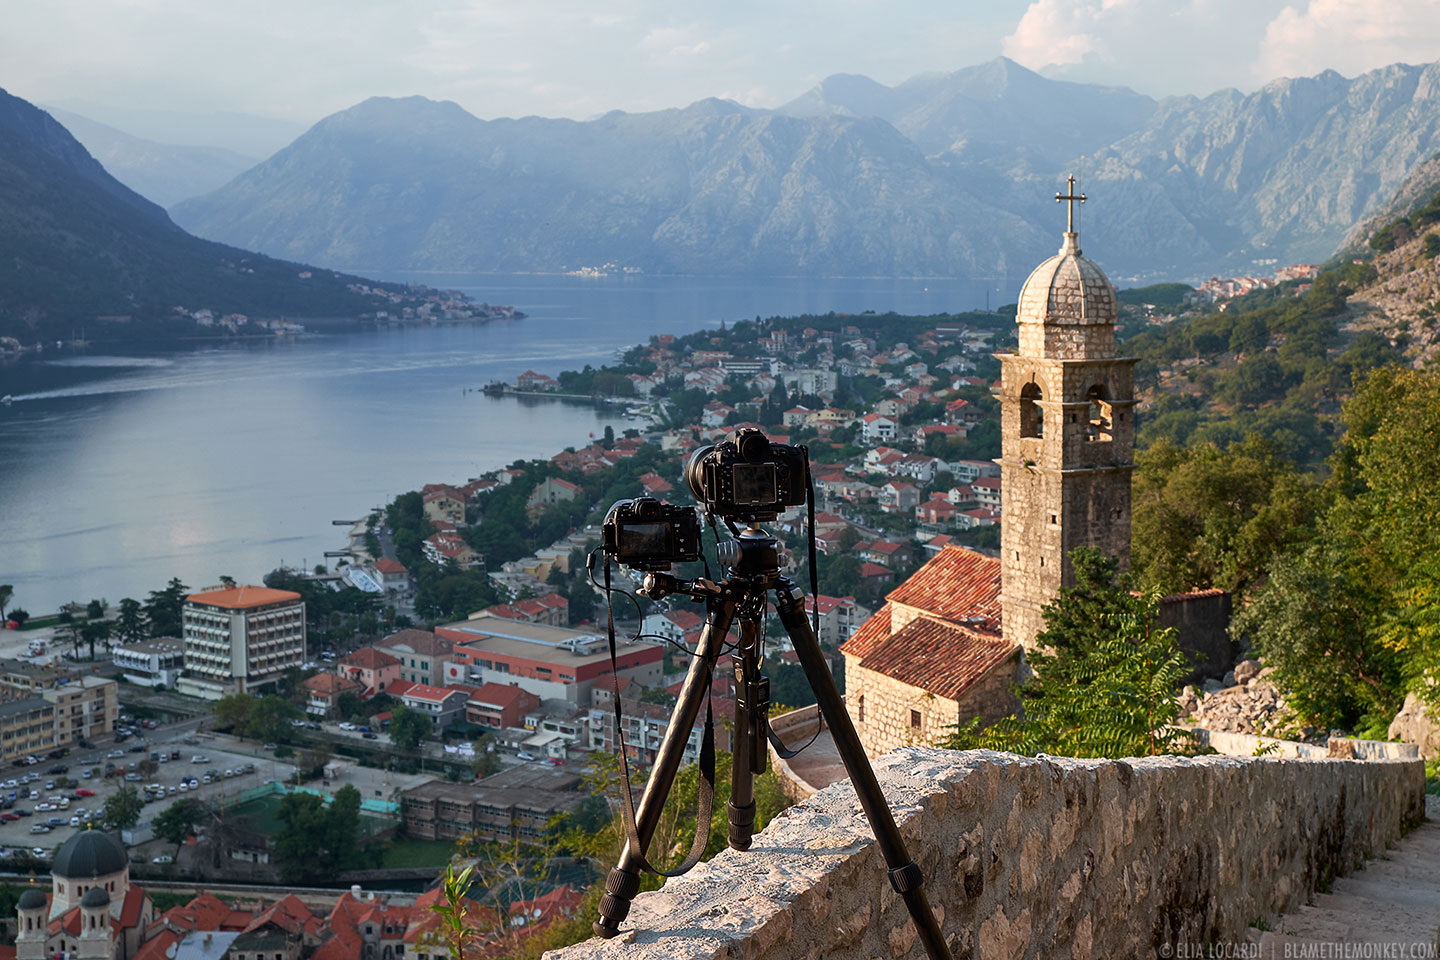 10-Kotor-Monastery-Church-Wall-2-Cameras-Clamp